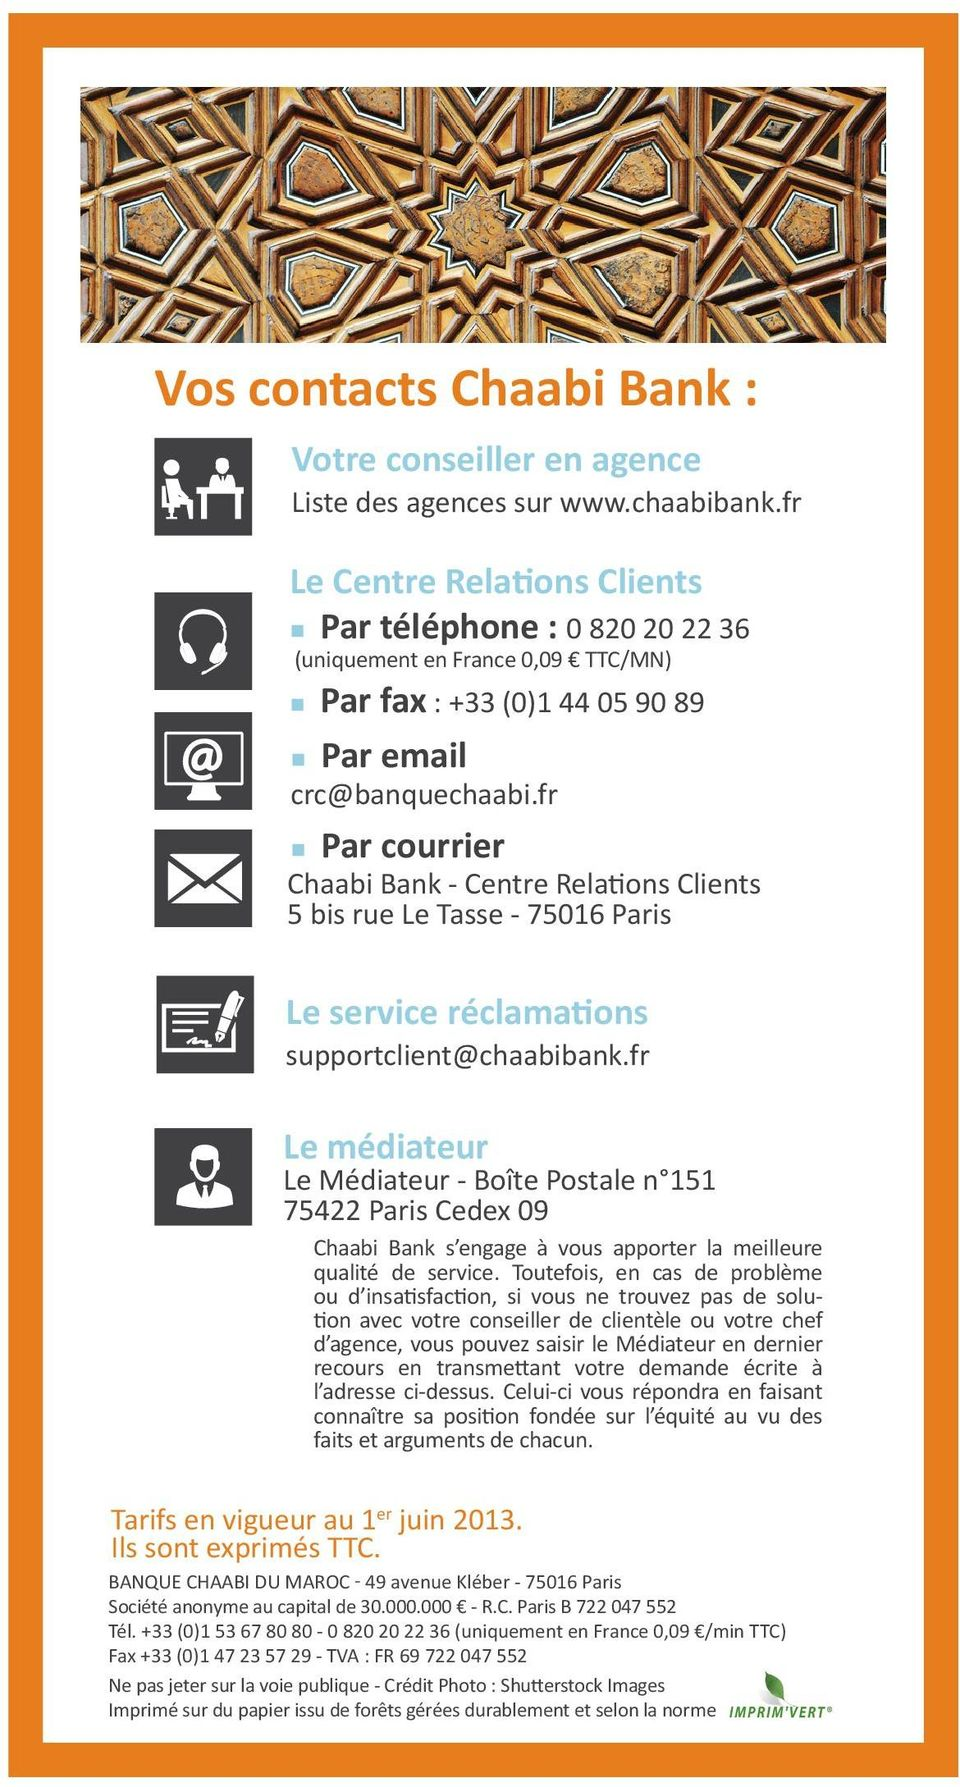 fr Par courrier Chaabi Bank - Centre Relations Clients 5 bis rue Le Tasse - 75016 Paris Le service réclamations supportclient@chaabibank.